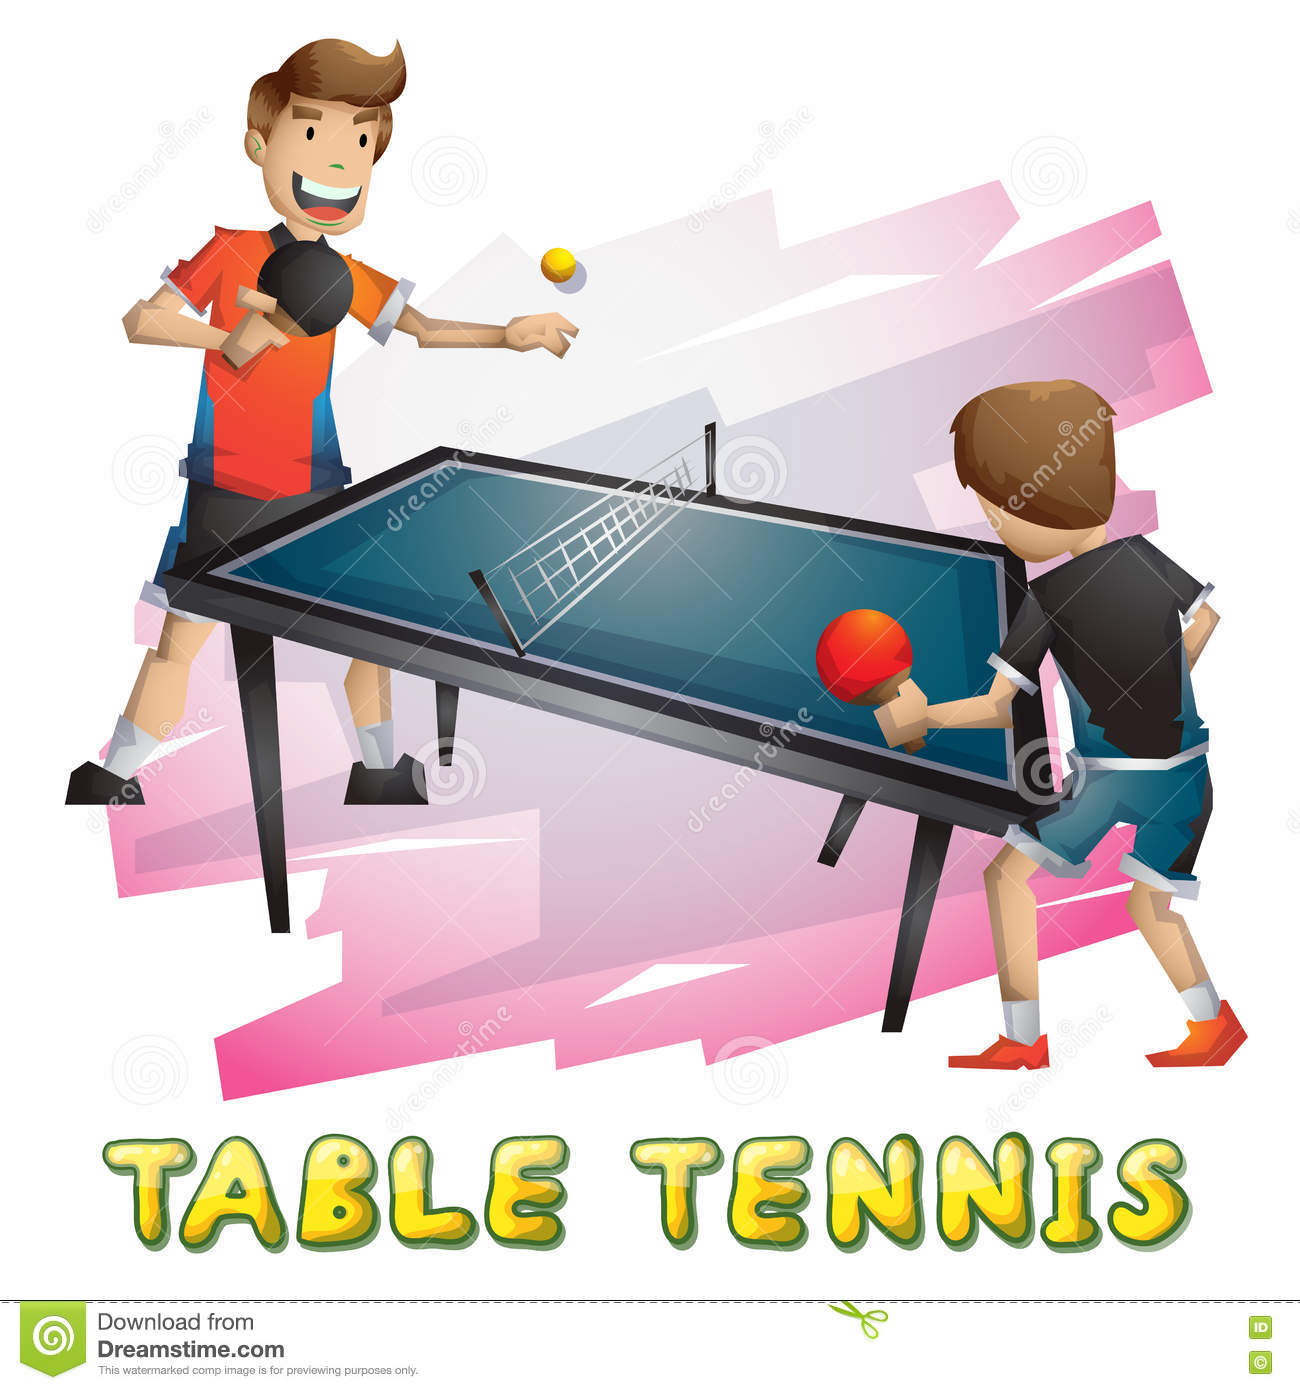 Ping pong table background - Cartoon Vector Table Tennis Sport With Separated Layers